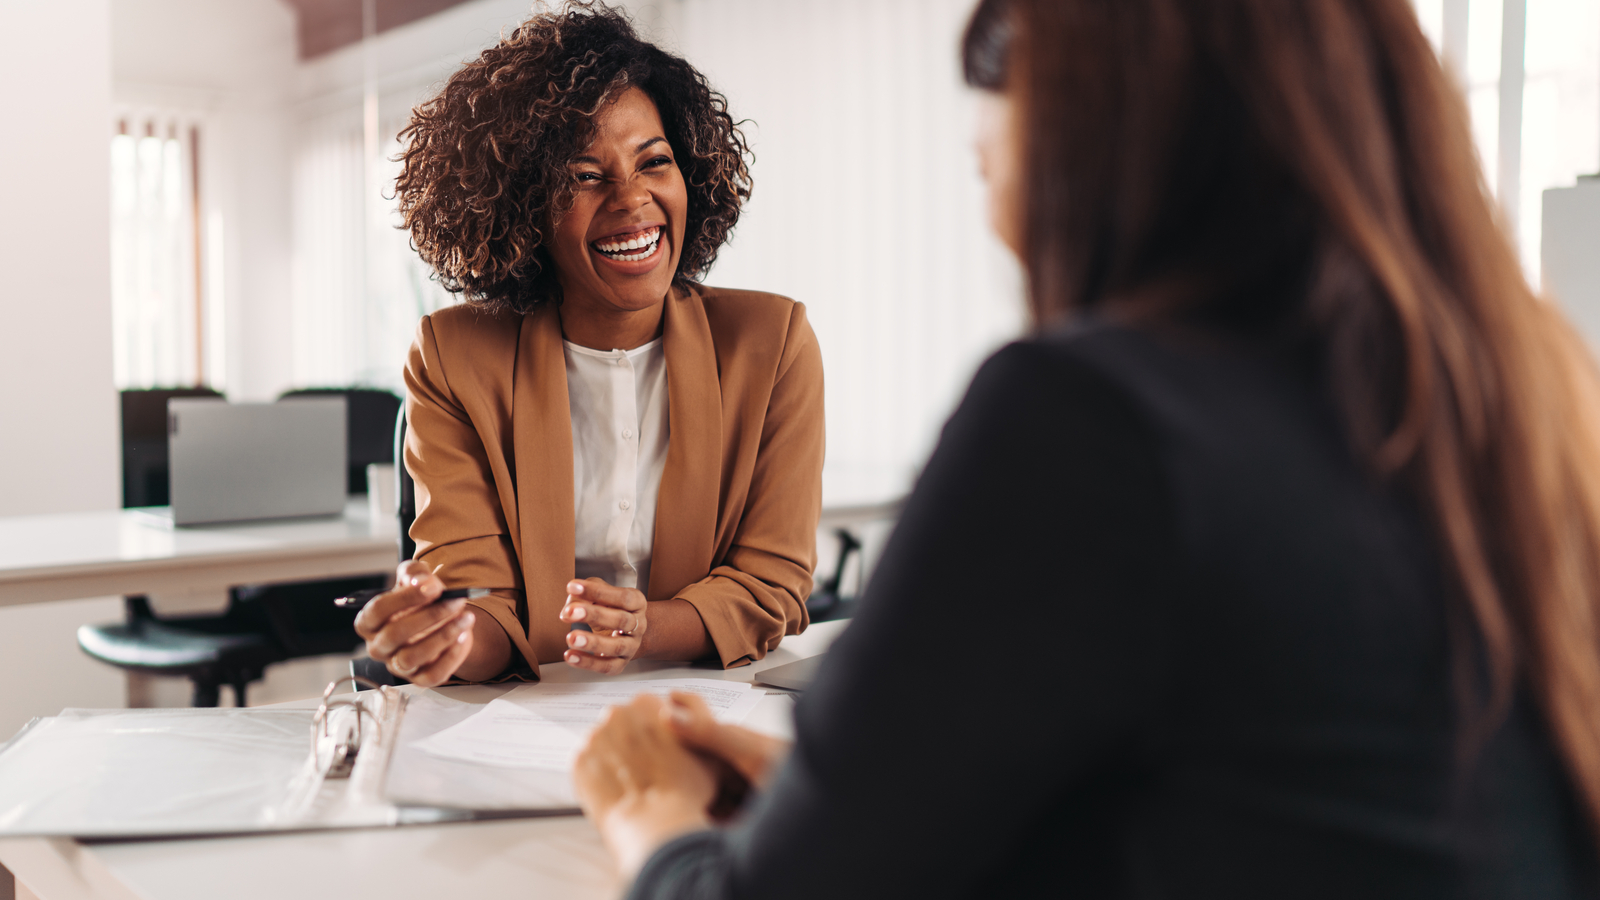 Image showing a client meeting with two women. Maintaining client relationships is essential for businesses - eSign Genie can help.